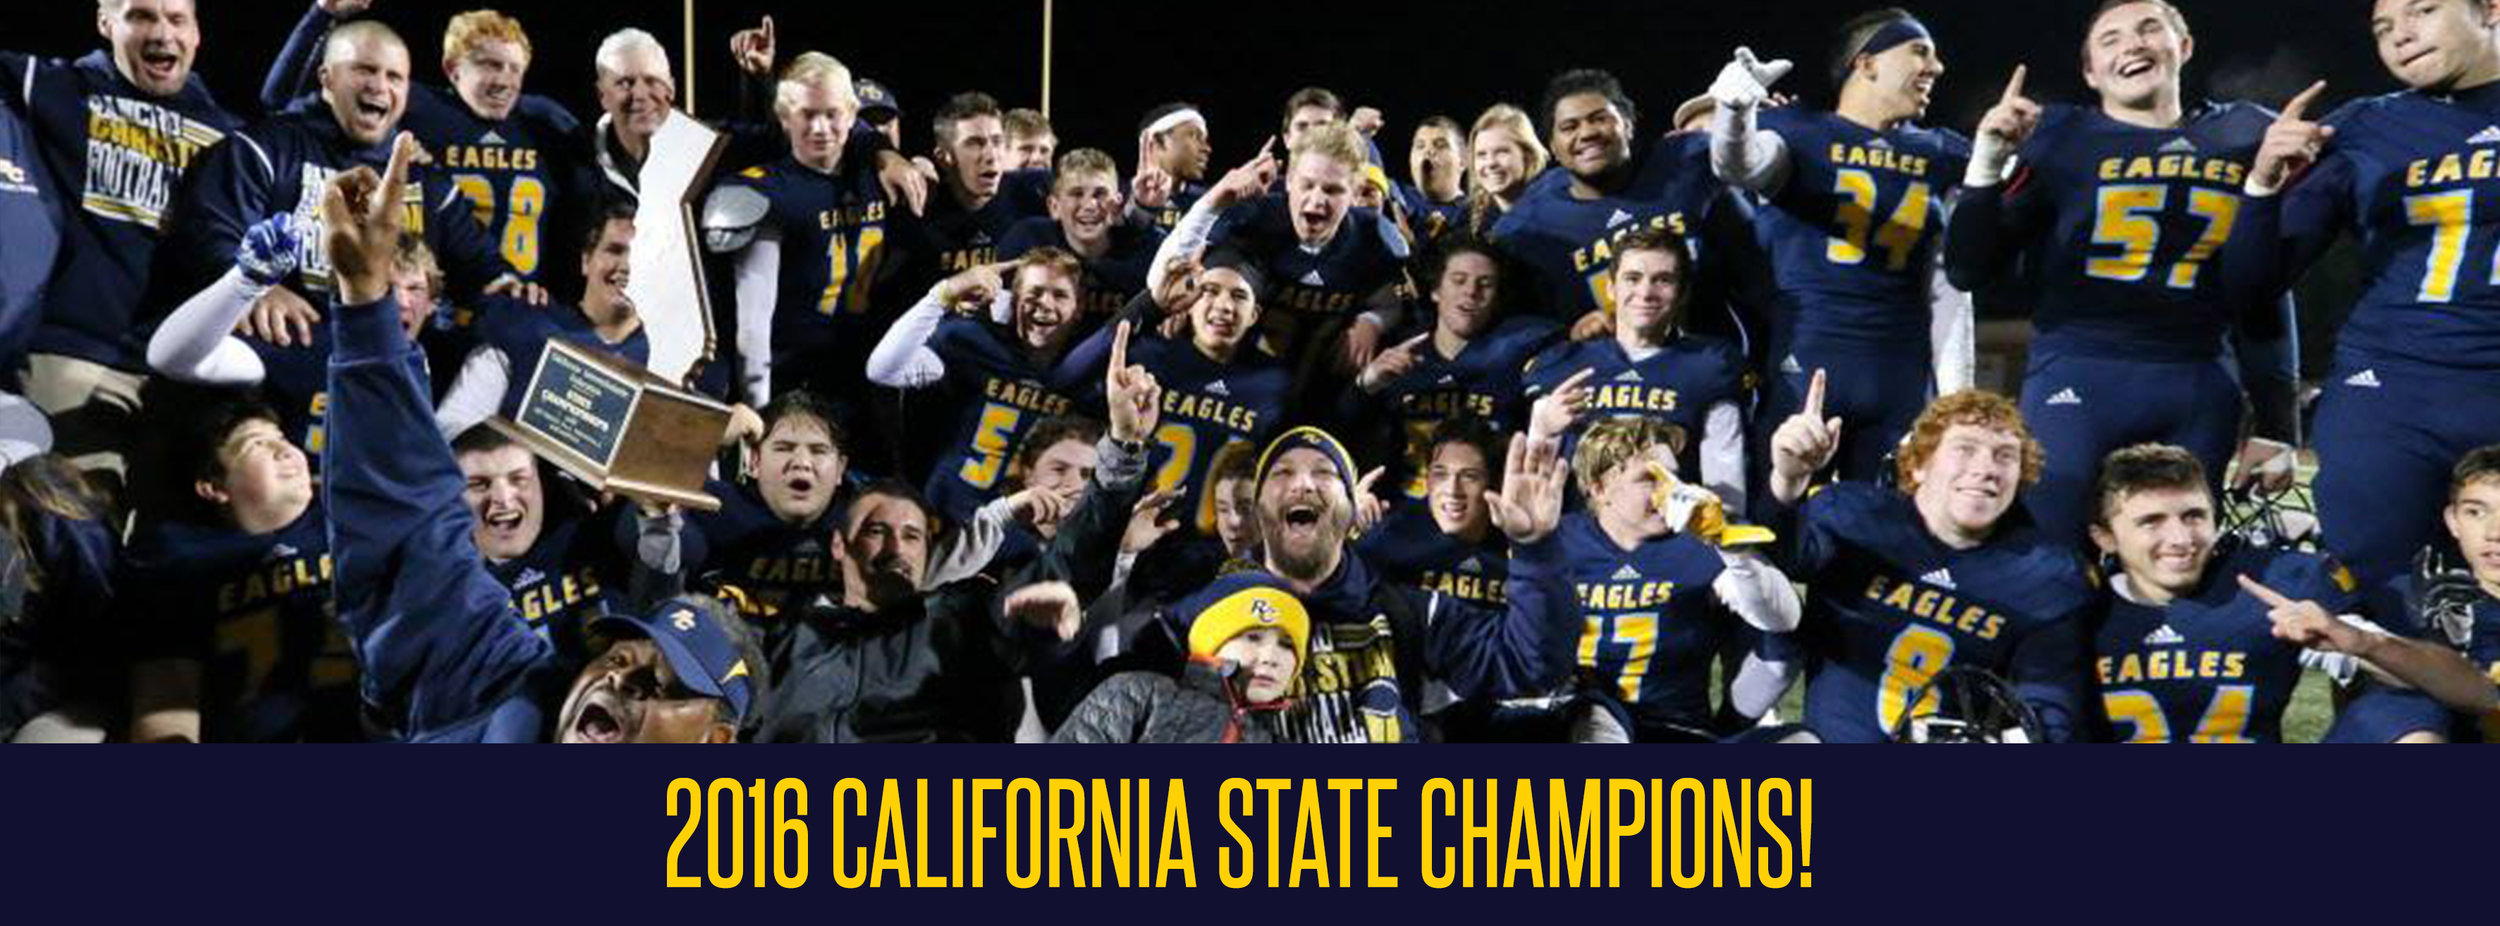 16-17-State-Champions-Football-FB-Cover.jpg